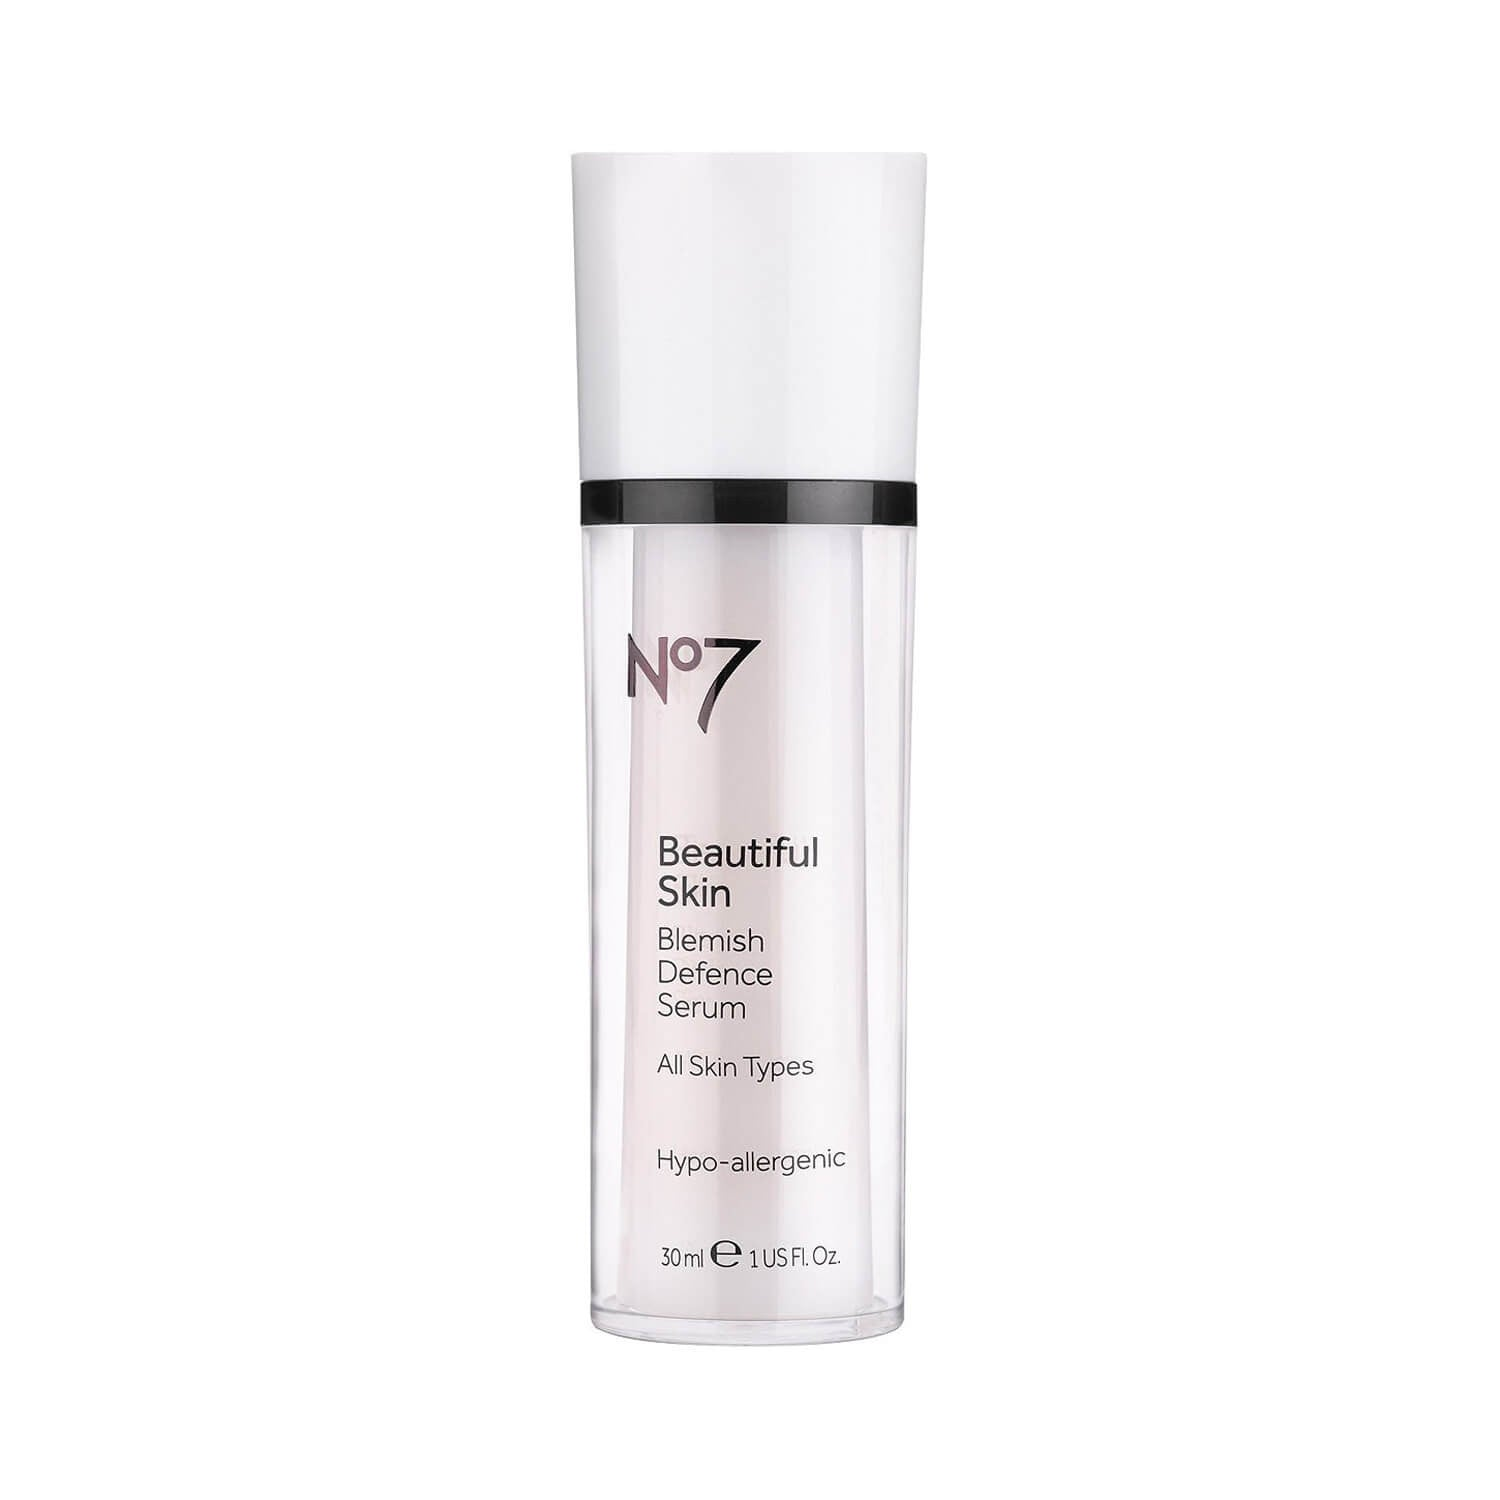 Buy No7 Skincare Anti Ageing Beauty Products In Australia Myqt